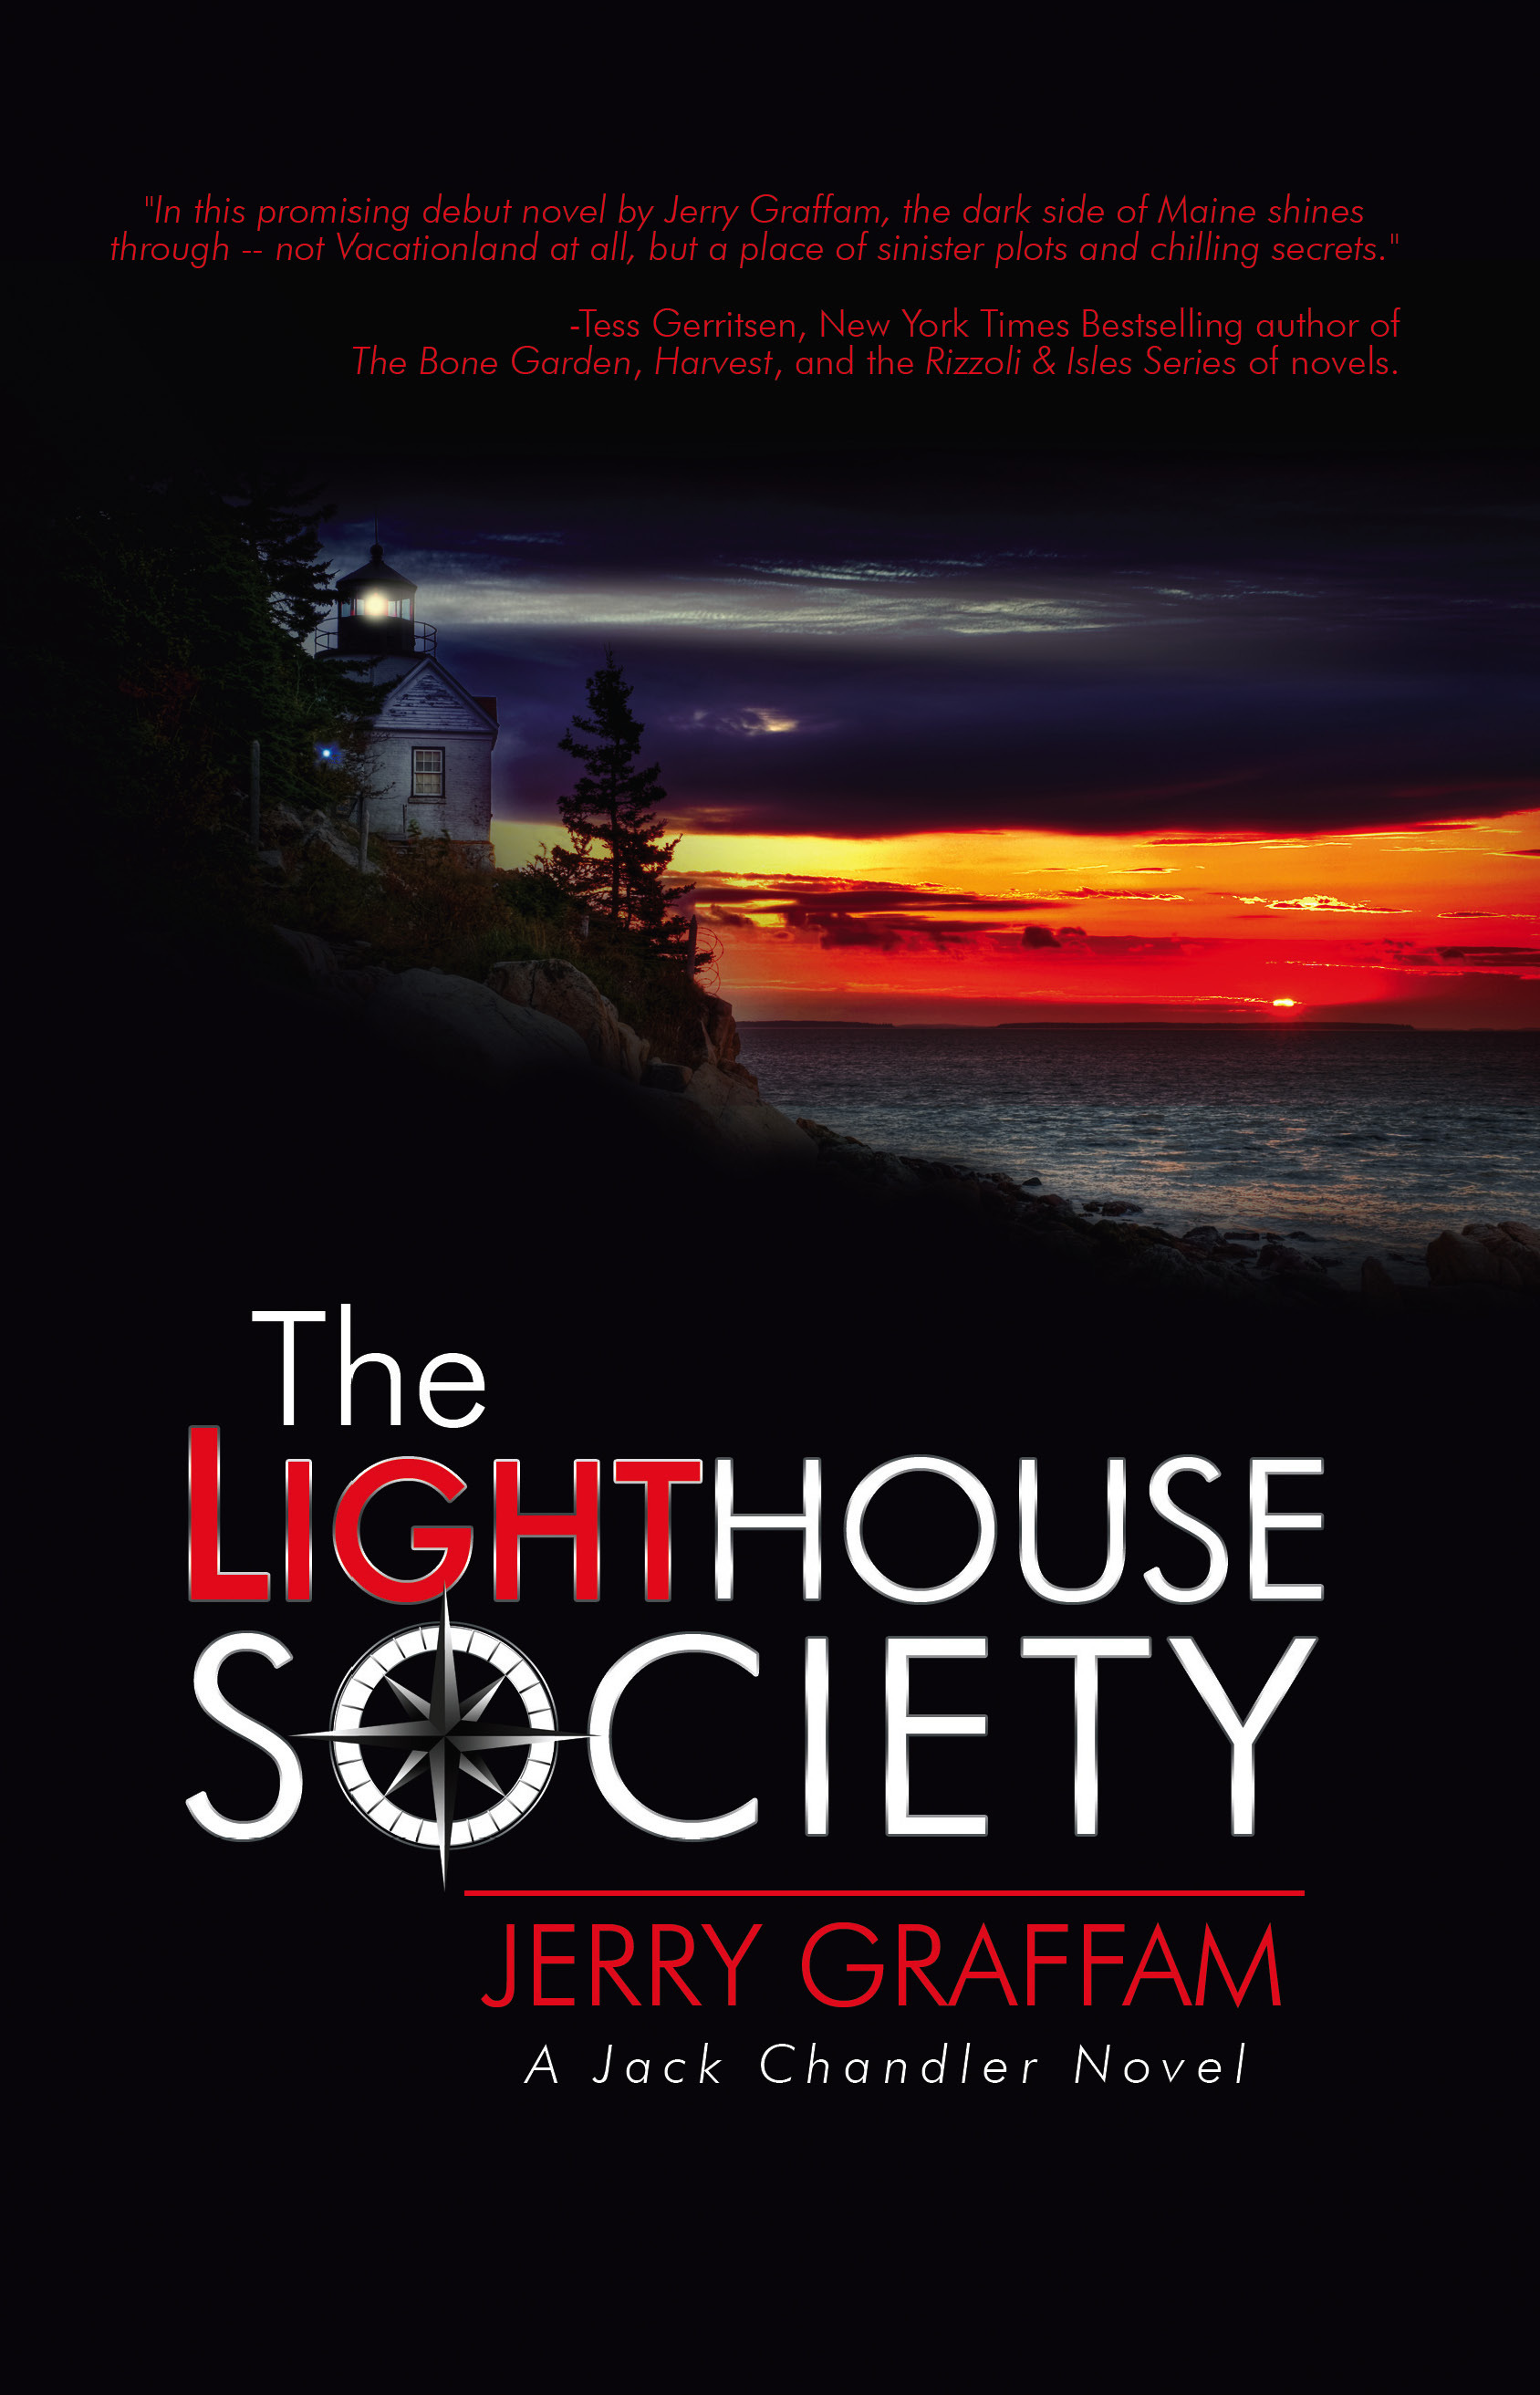 The Lighthouse Society